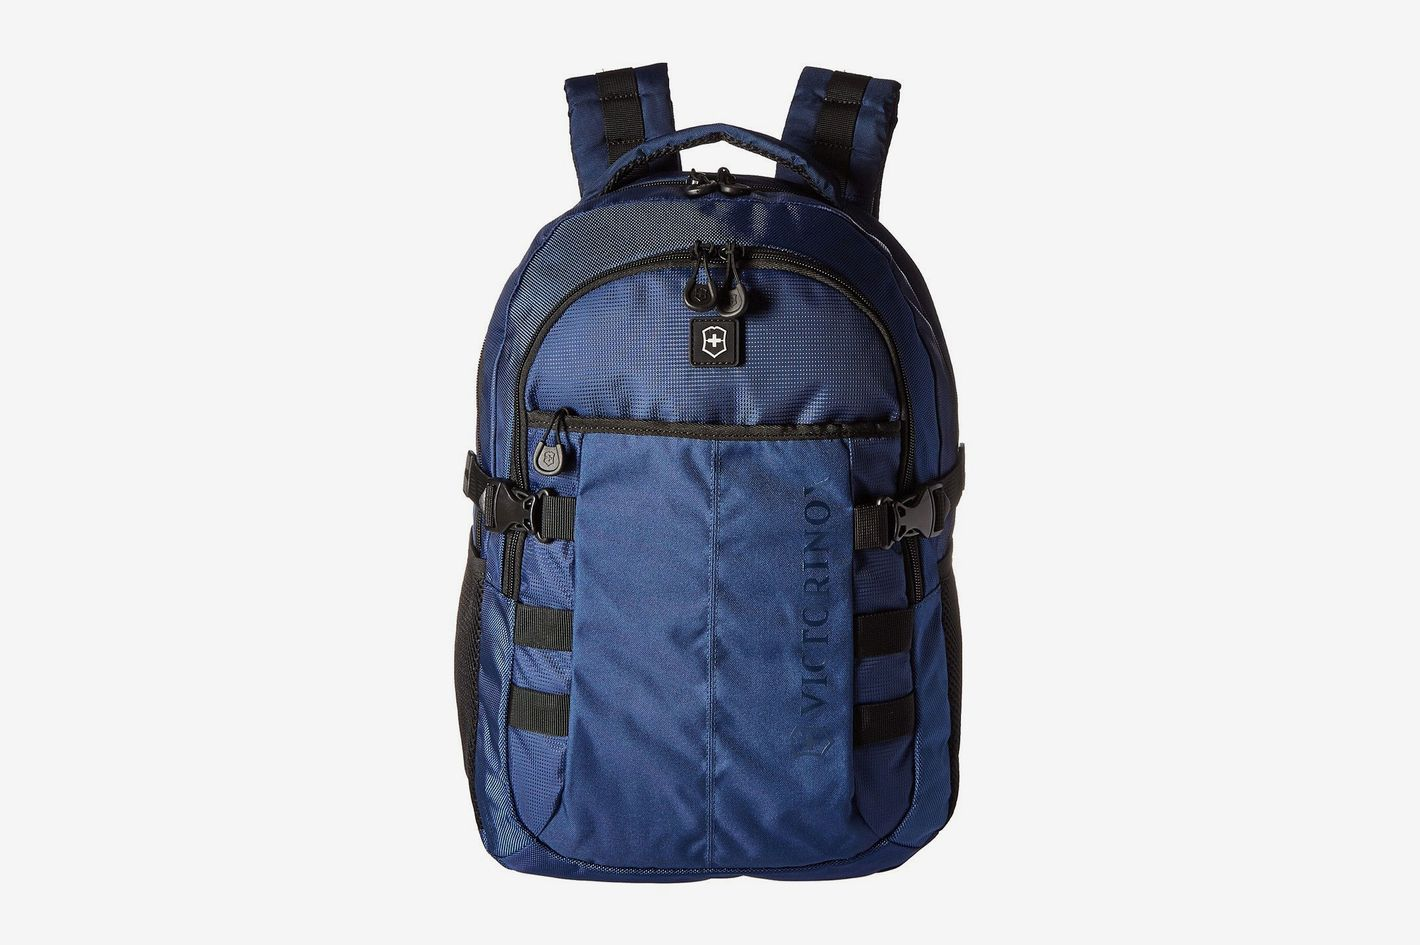 7990e4a41902 Best laptop backpacks. Victorinox VX Sport Cadet Laptop Backpack